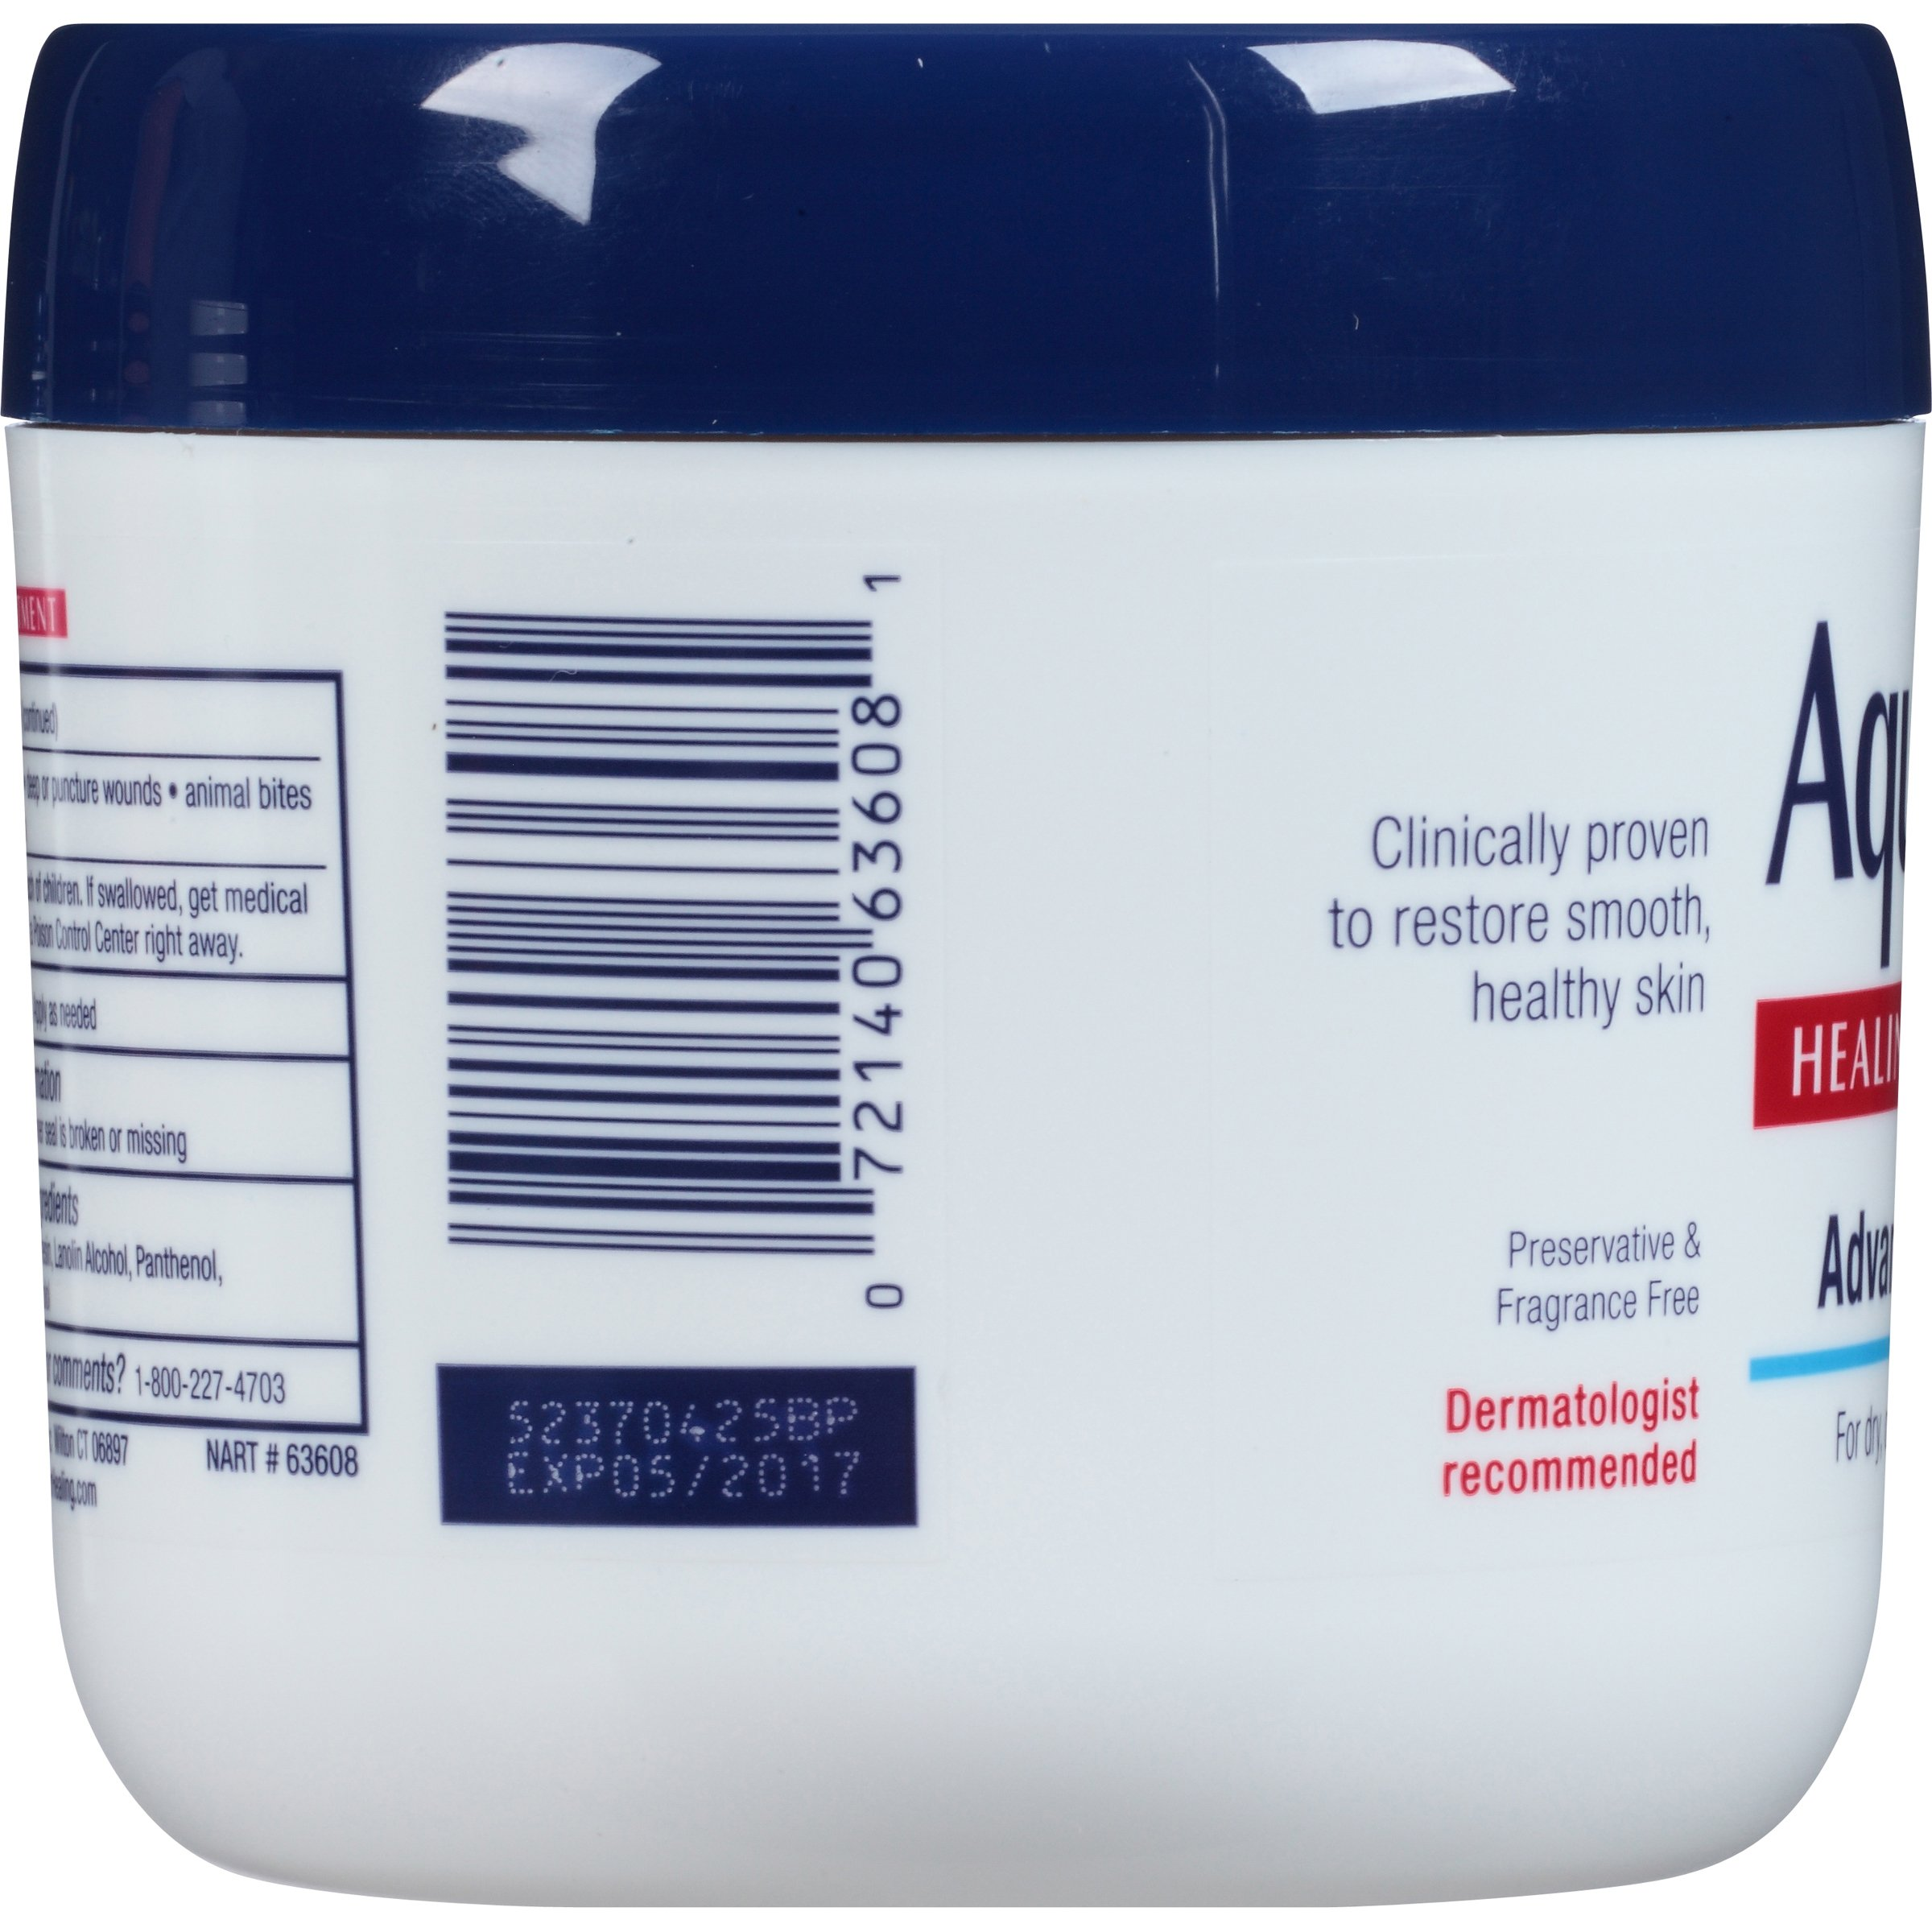 Aquaphor Healing Ointment,Advanced Therapy Skin Protectant 14 Ounce (Pack May Vary) by Aquaphor (Image #5)